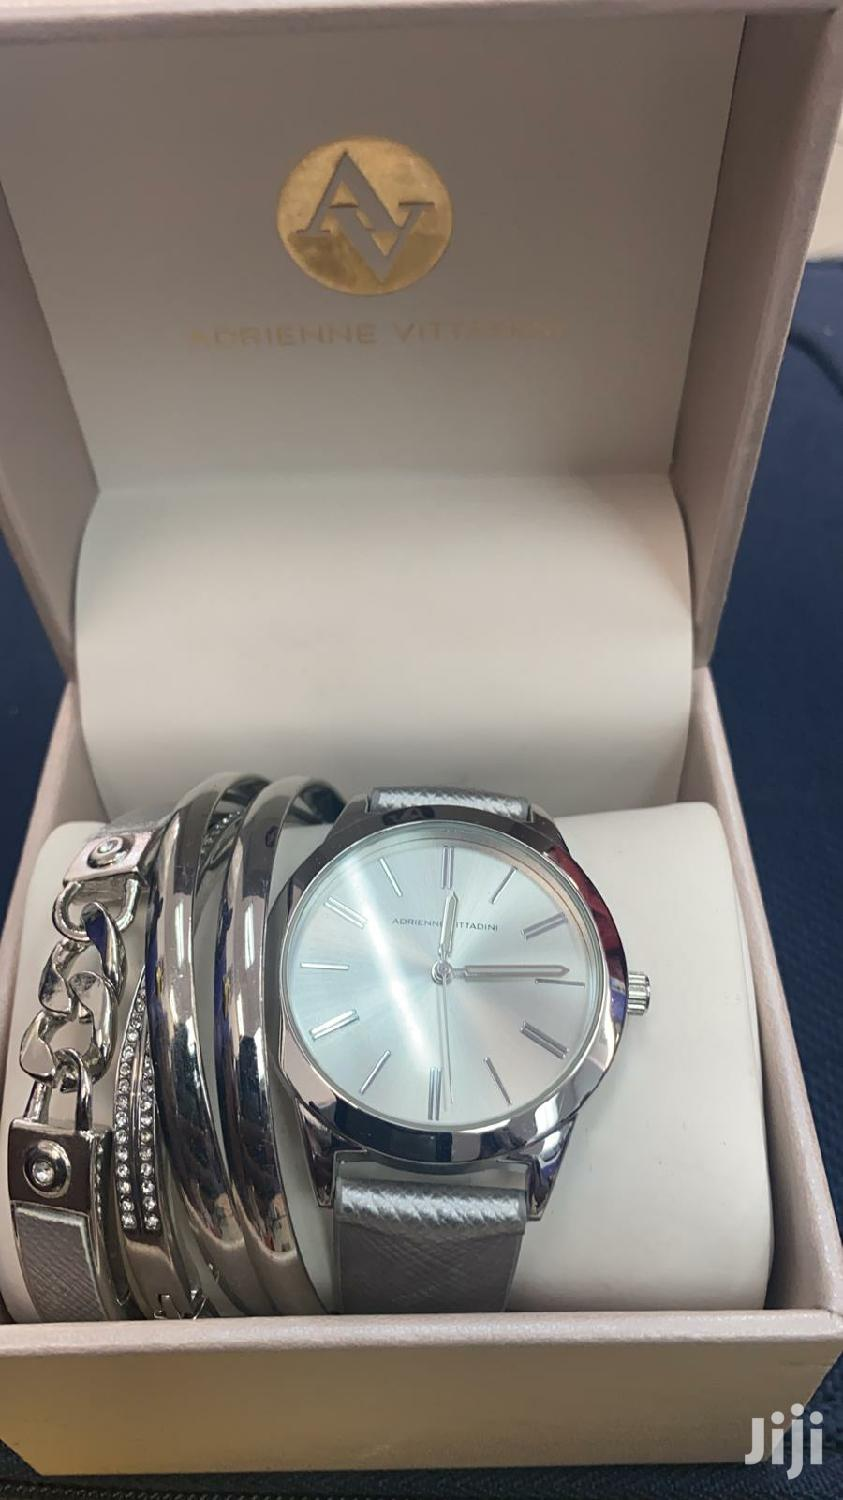 Ladies Watch | Watches for sale in Kumasi Metropolitan, Ashanti, Ghana